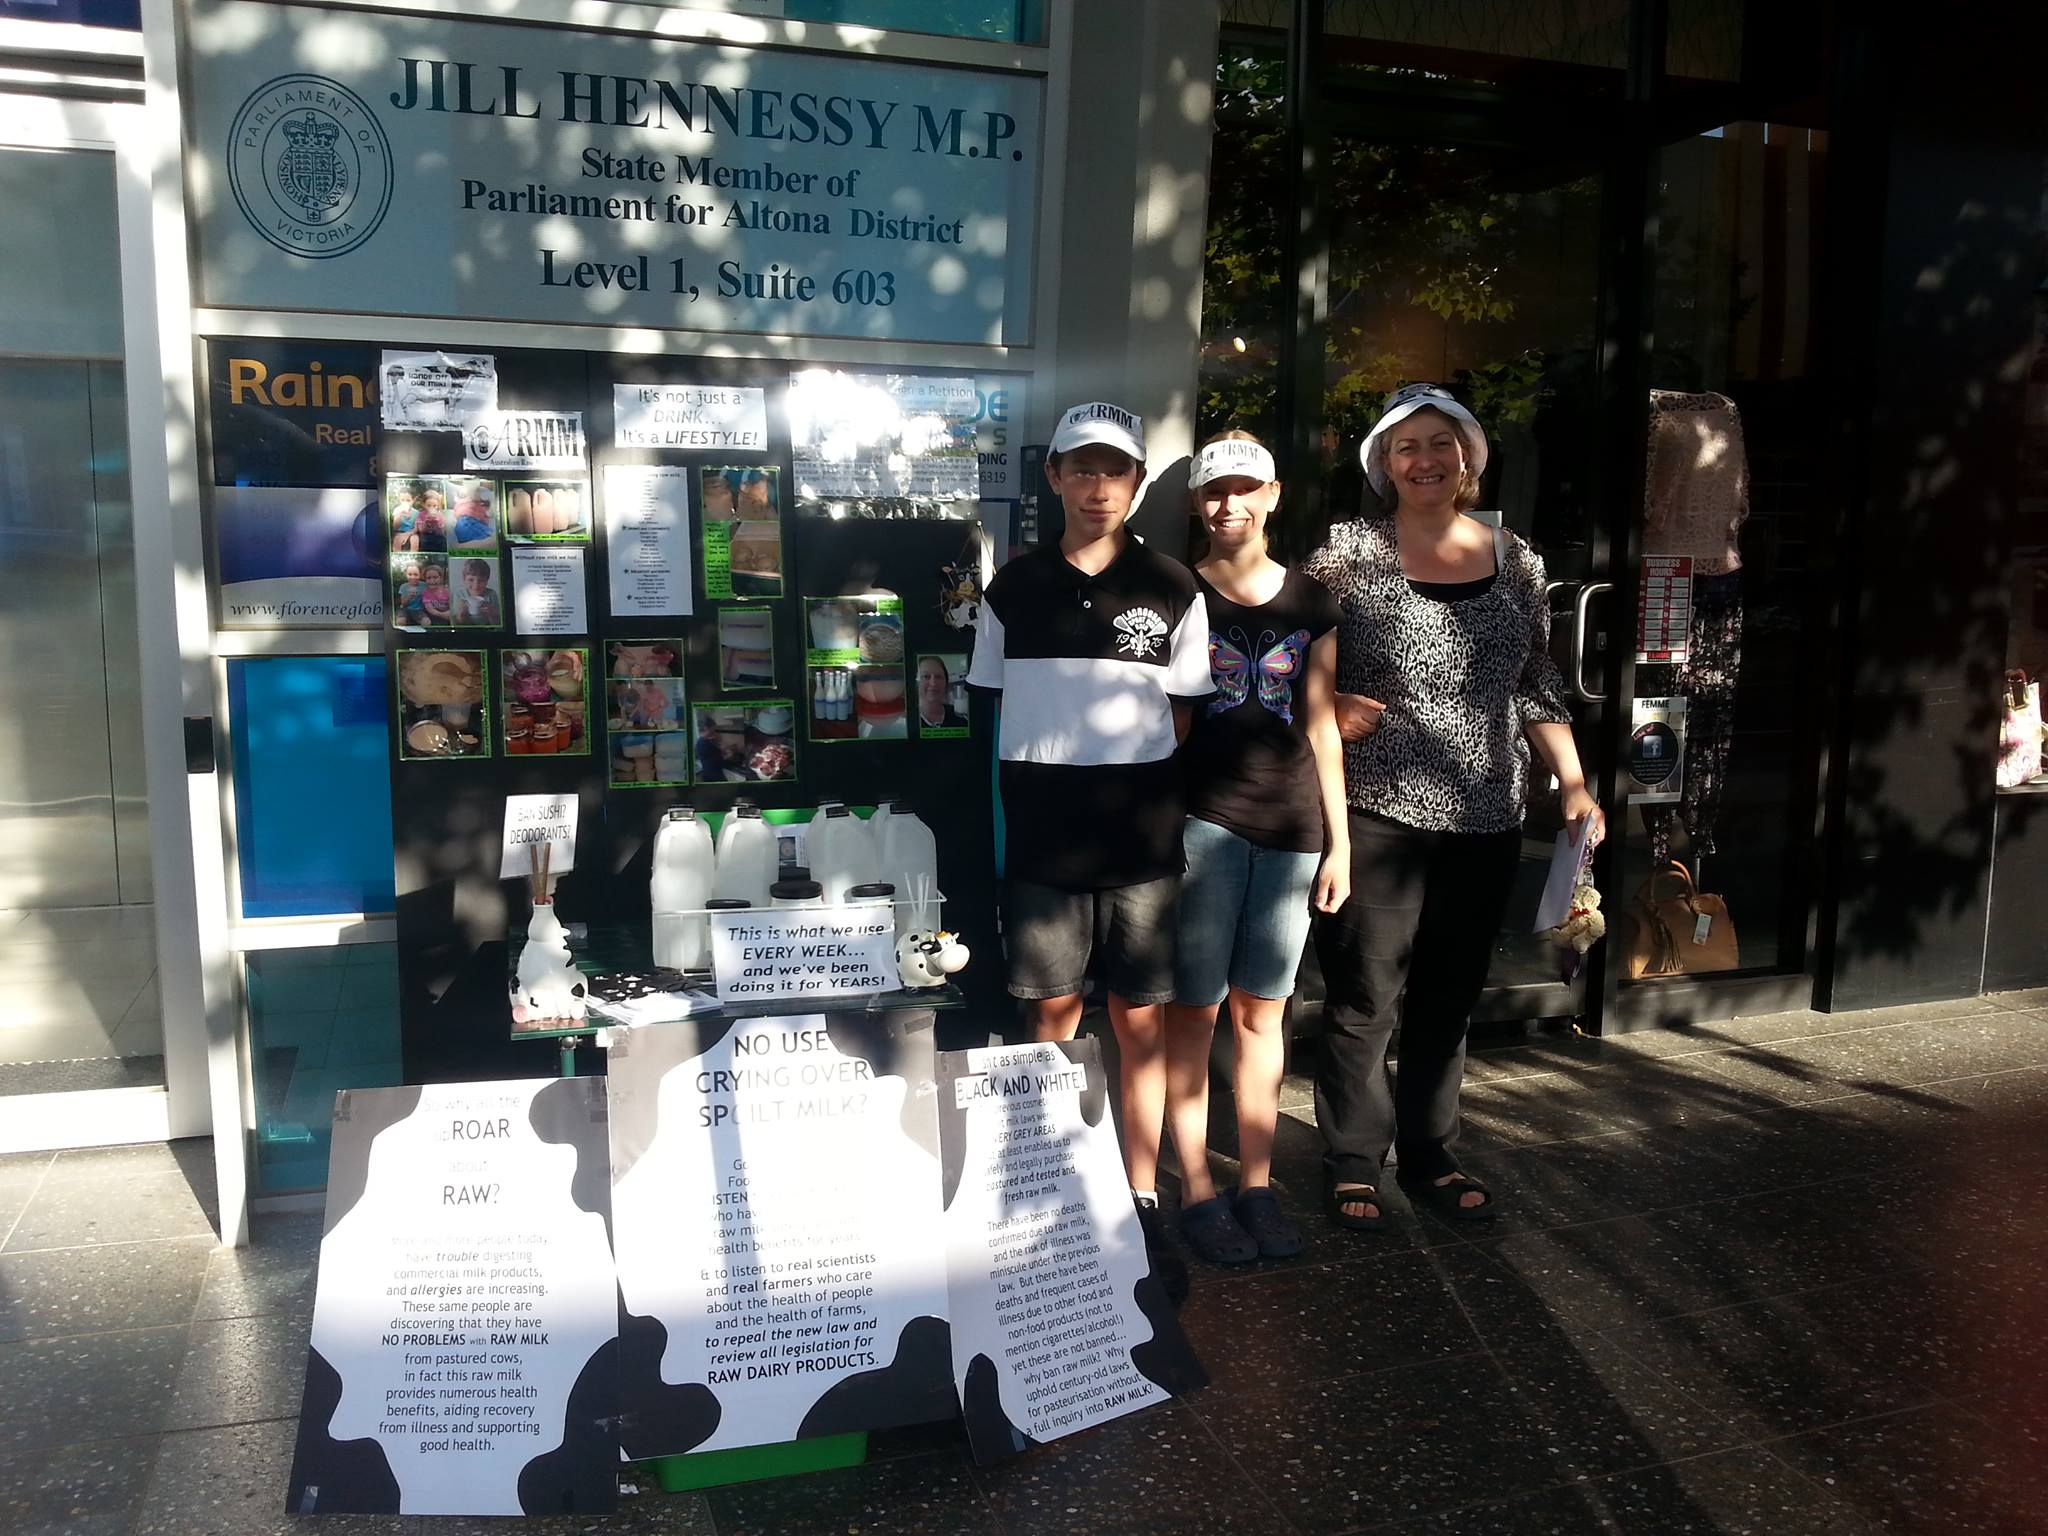 Supporters got lots of positive feedback from public and comments about nanny state while having a chat and handing out literature